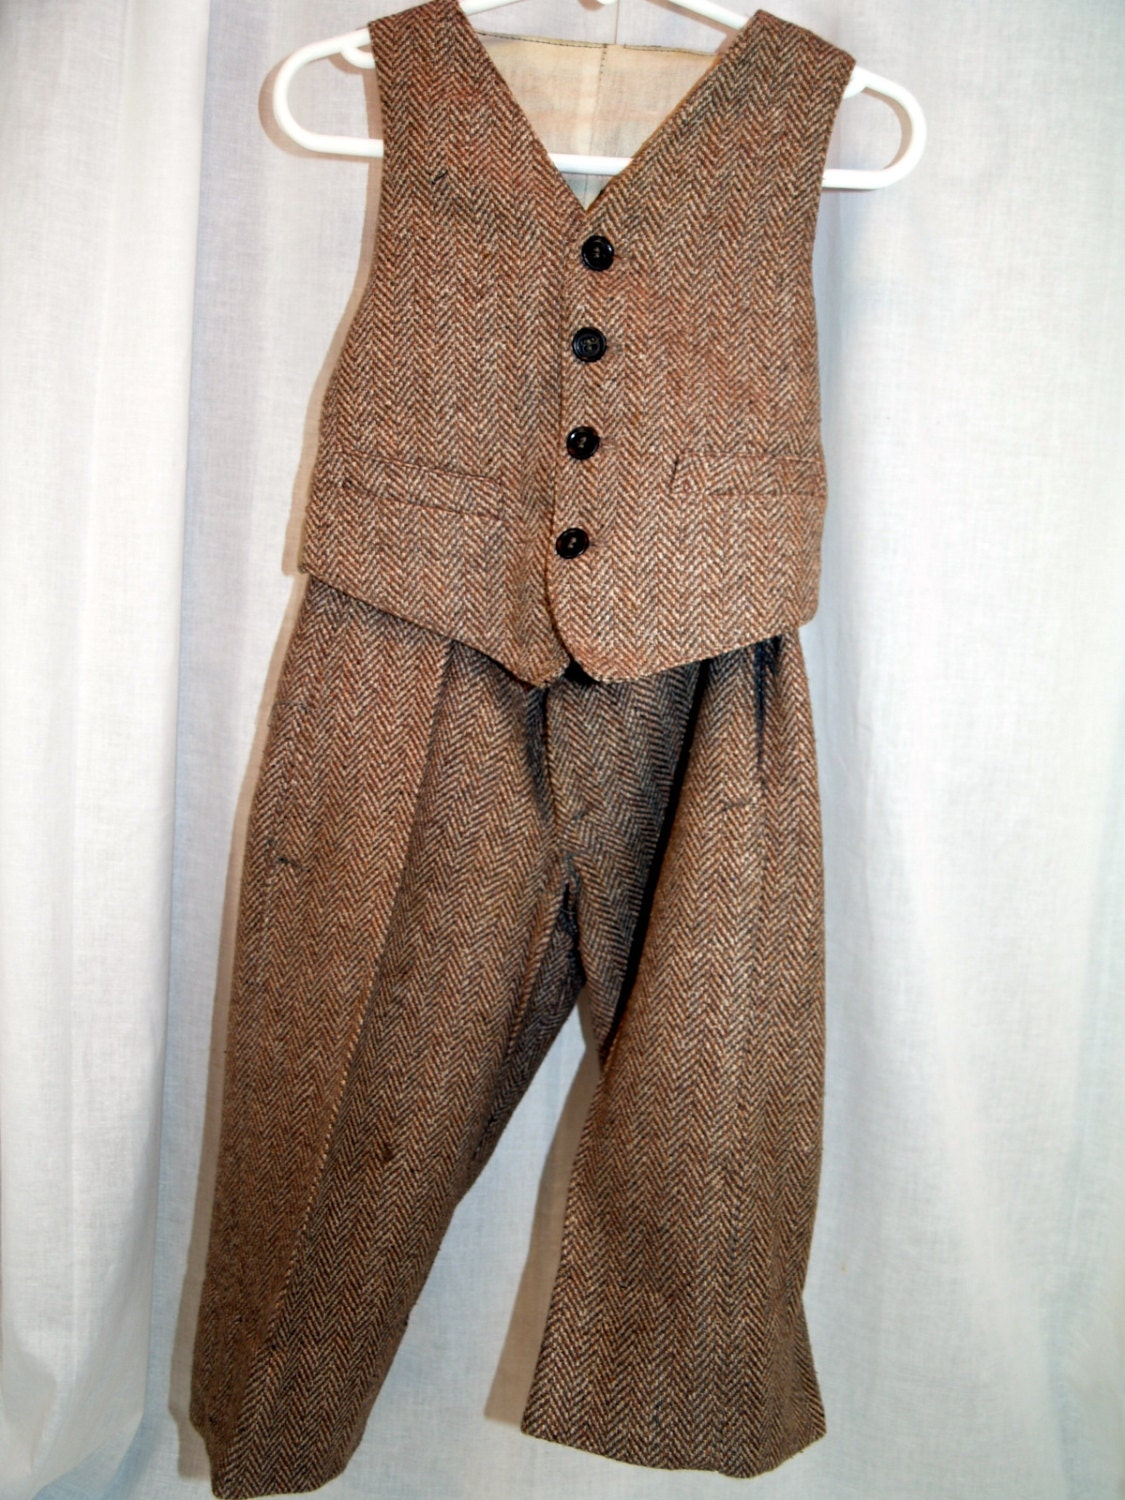 Antique boys winter wool tweed suit vest and knickers